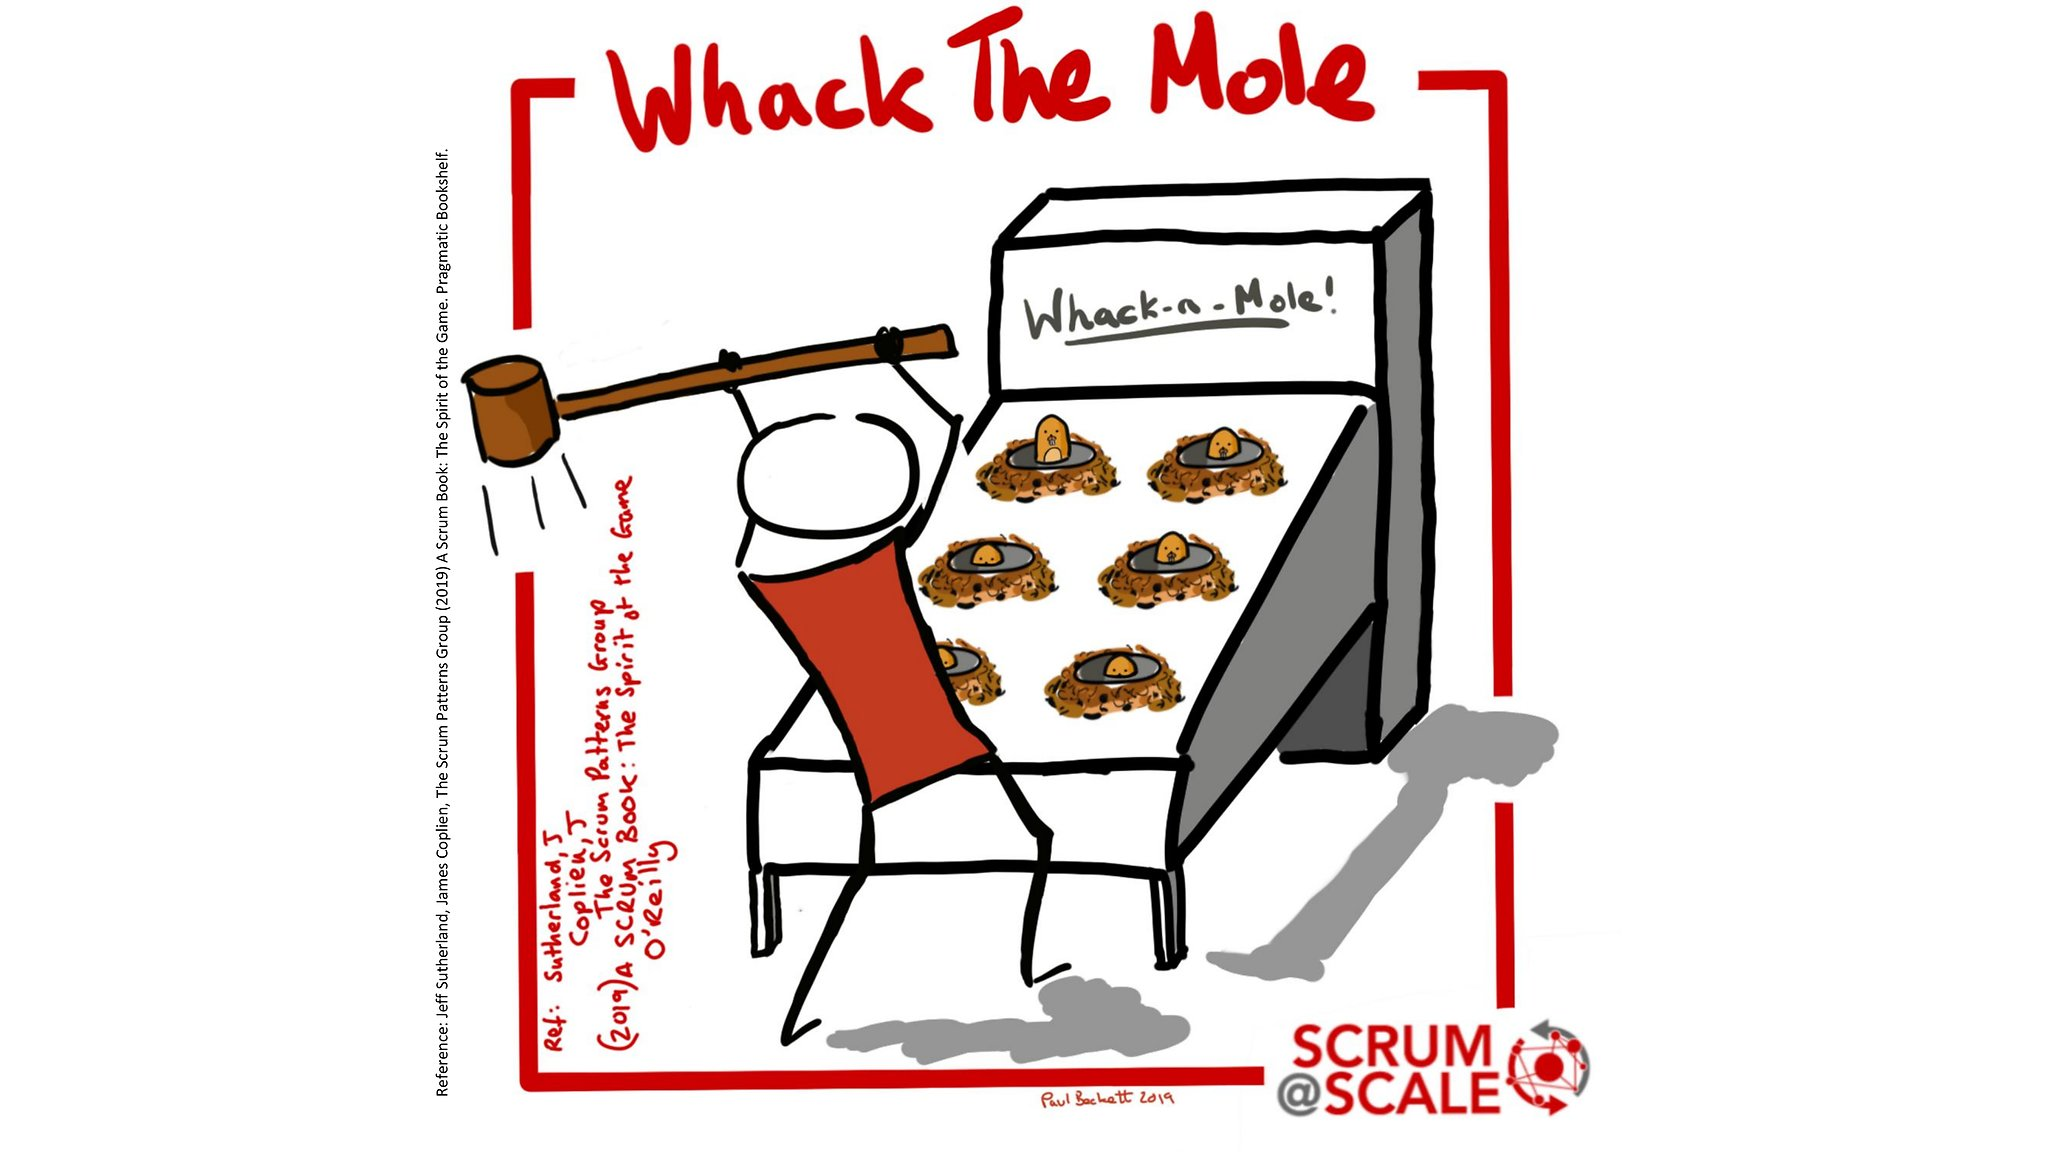 Whack The Mole - Recommended Scrum Patterns - Scrum@Scale